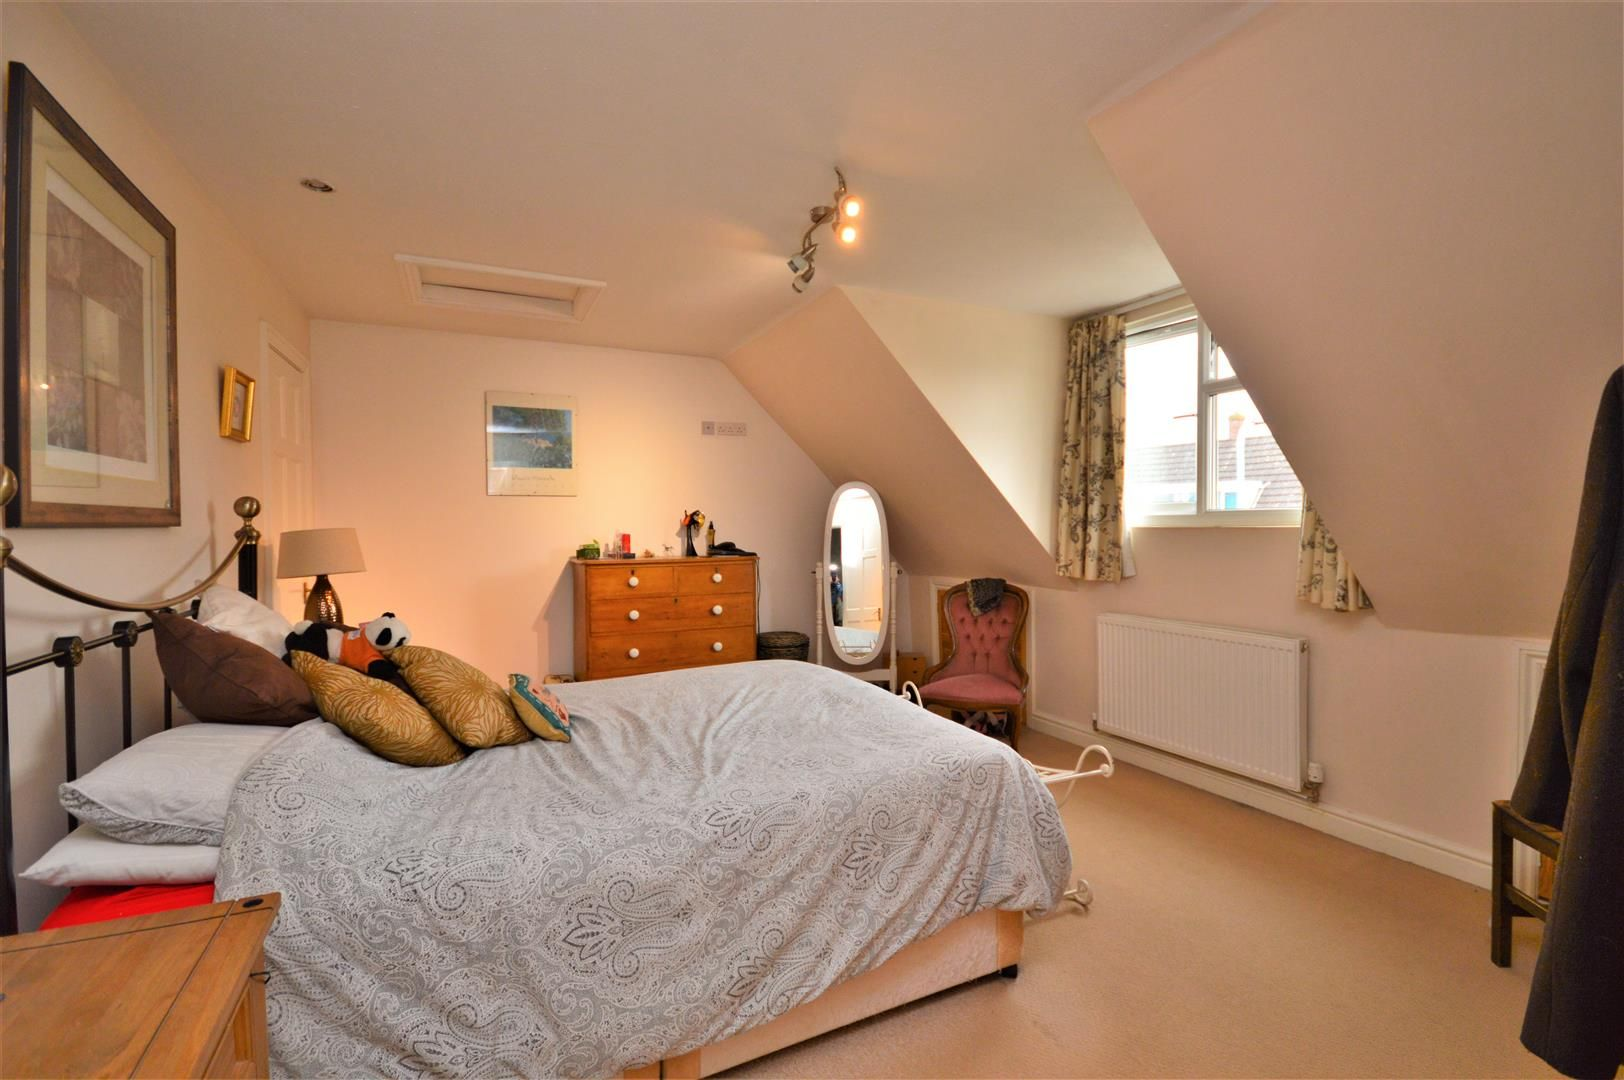 4 bed semi-detached for sale in Clehonger 10